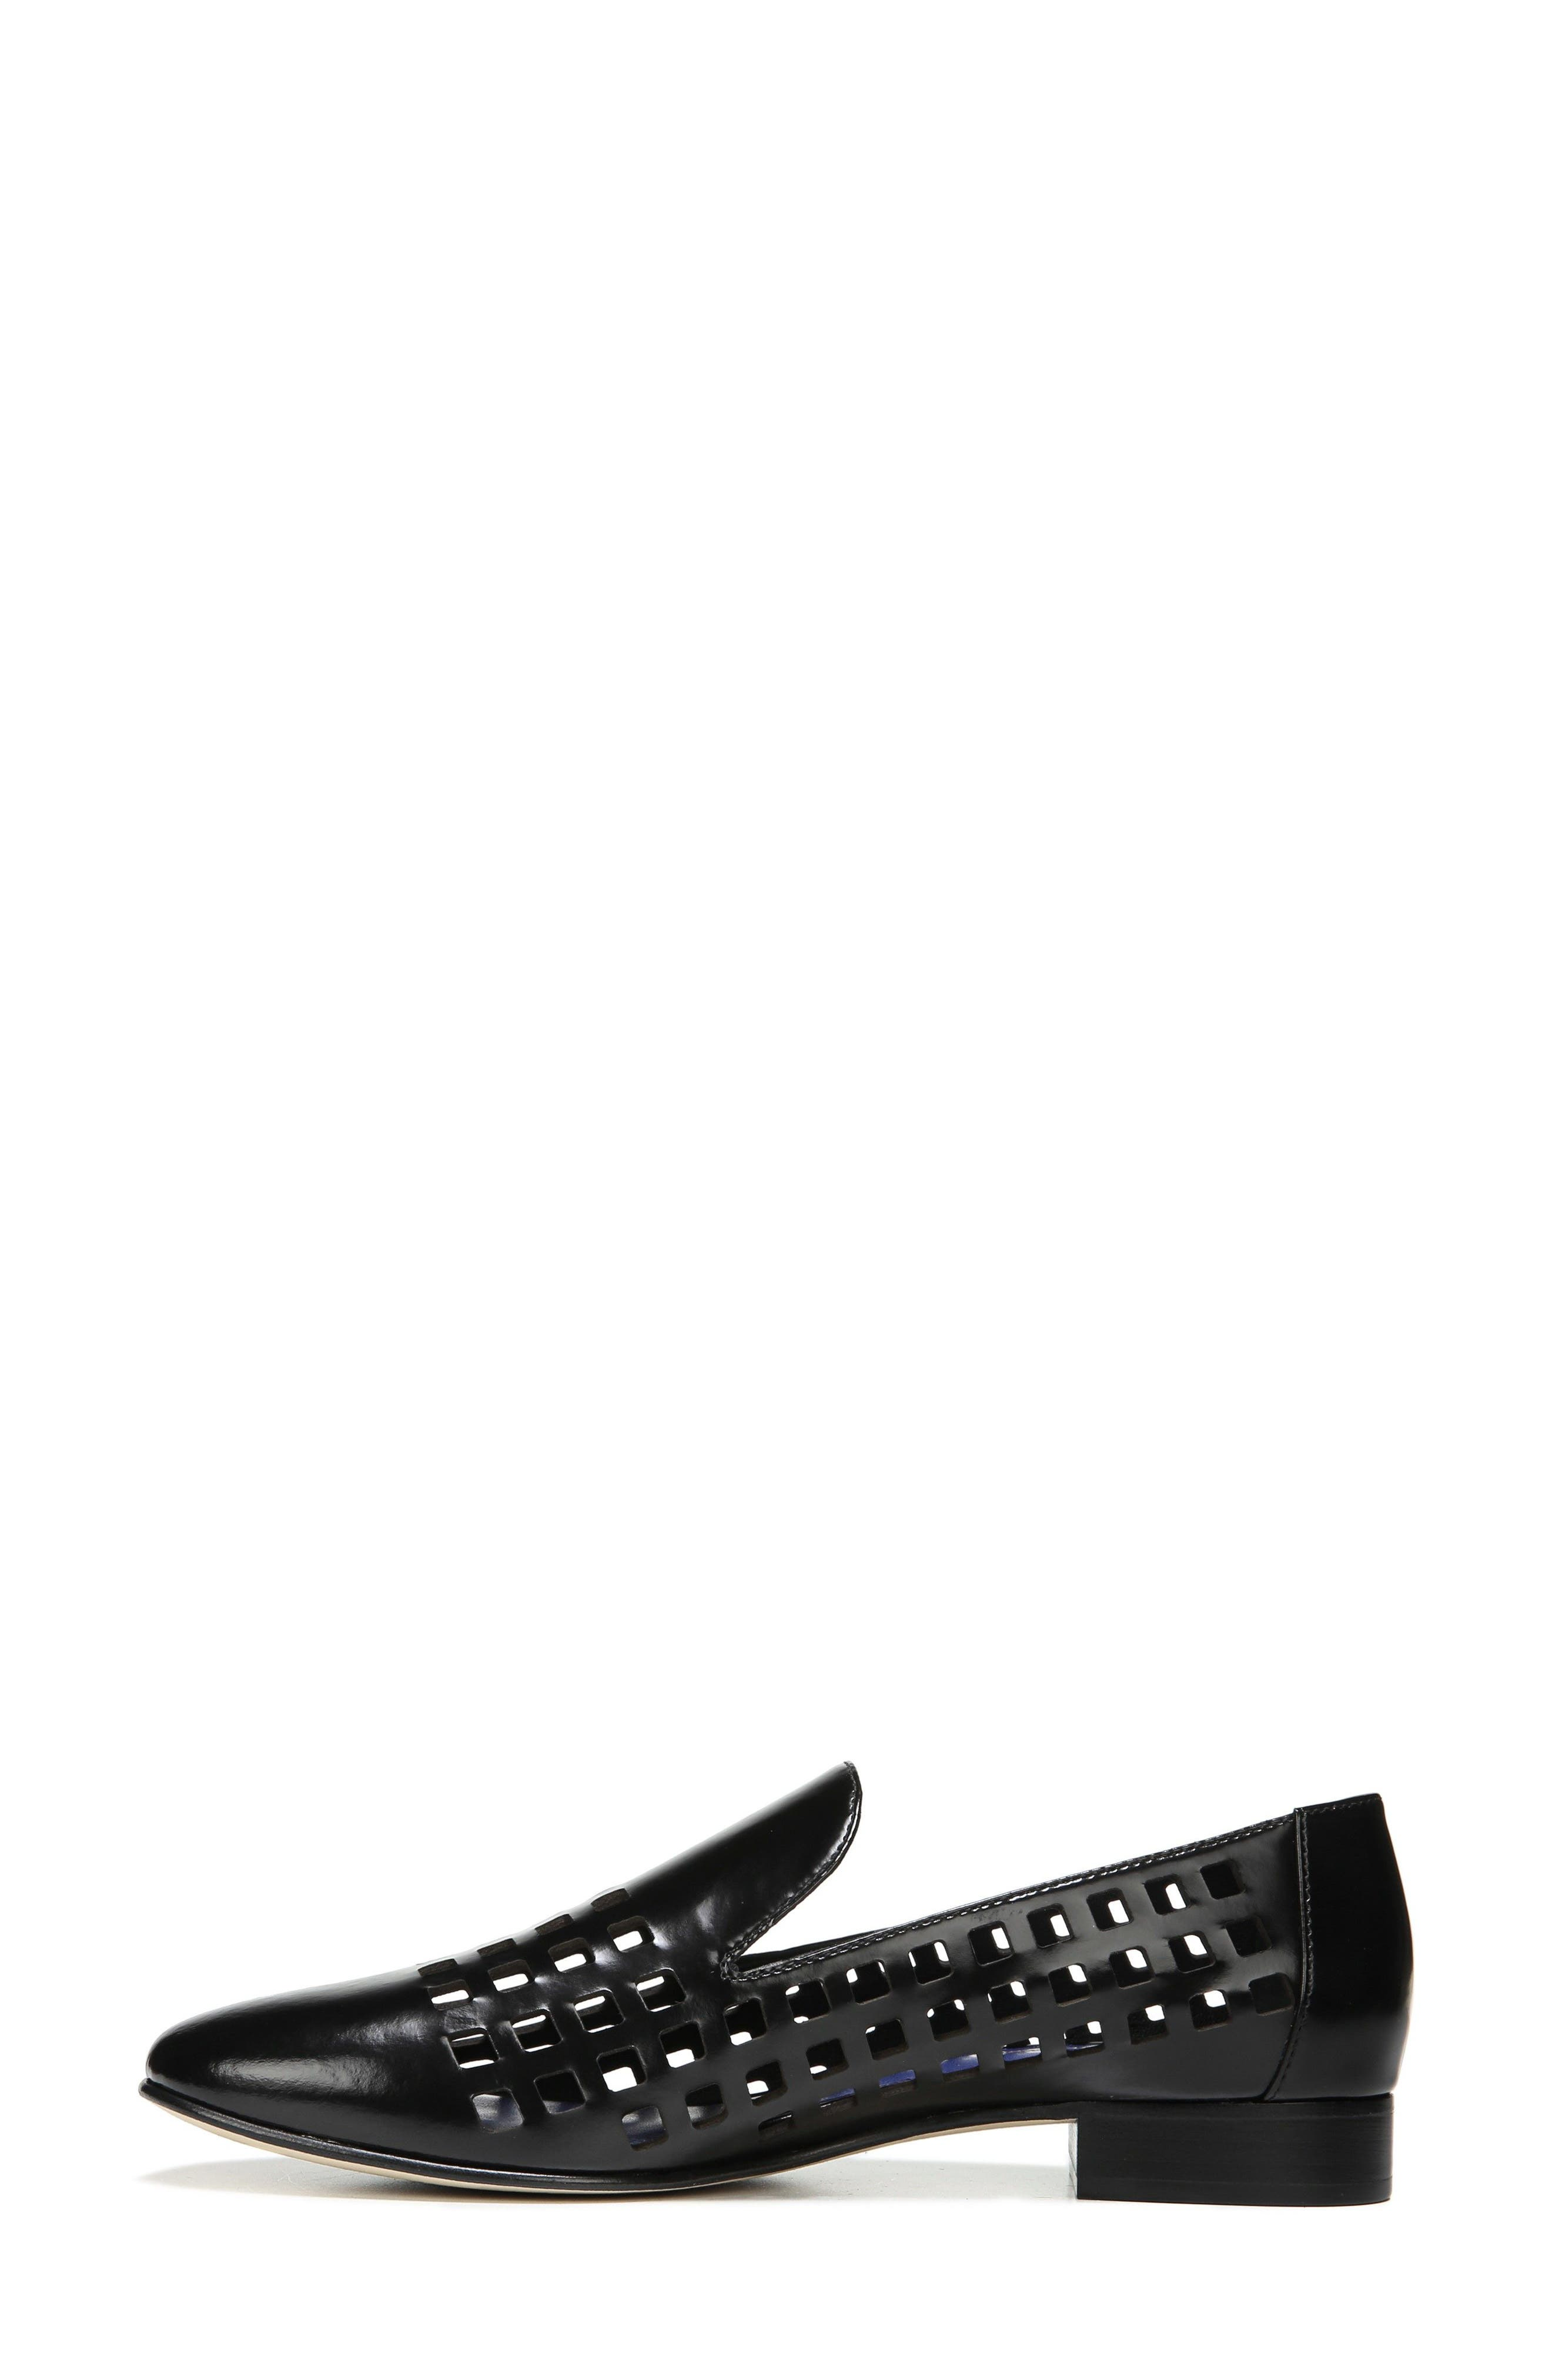 Linz Perforated Loafer,                             Alternate thumbnail 3, color,                             001